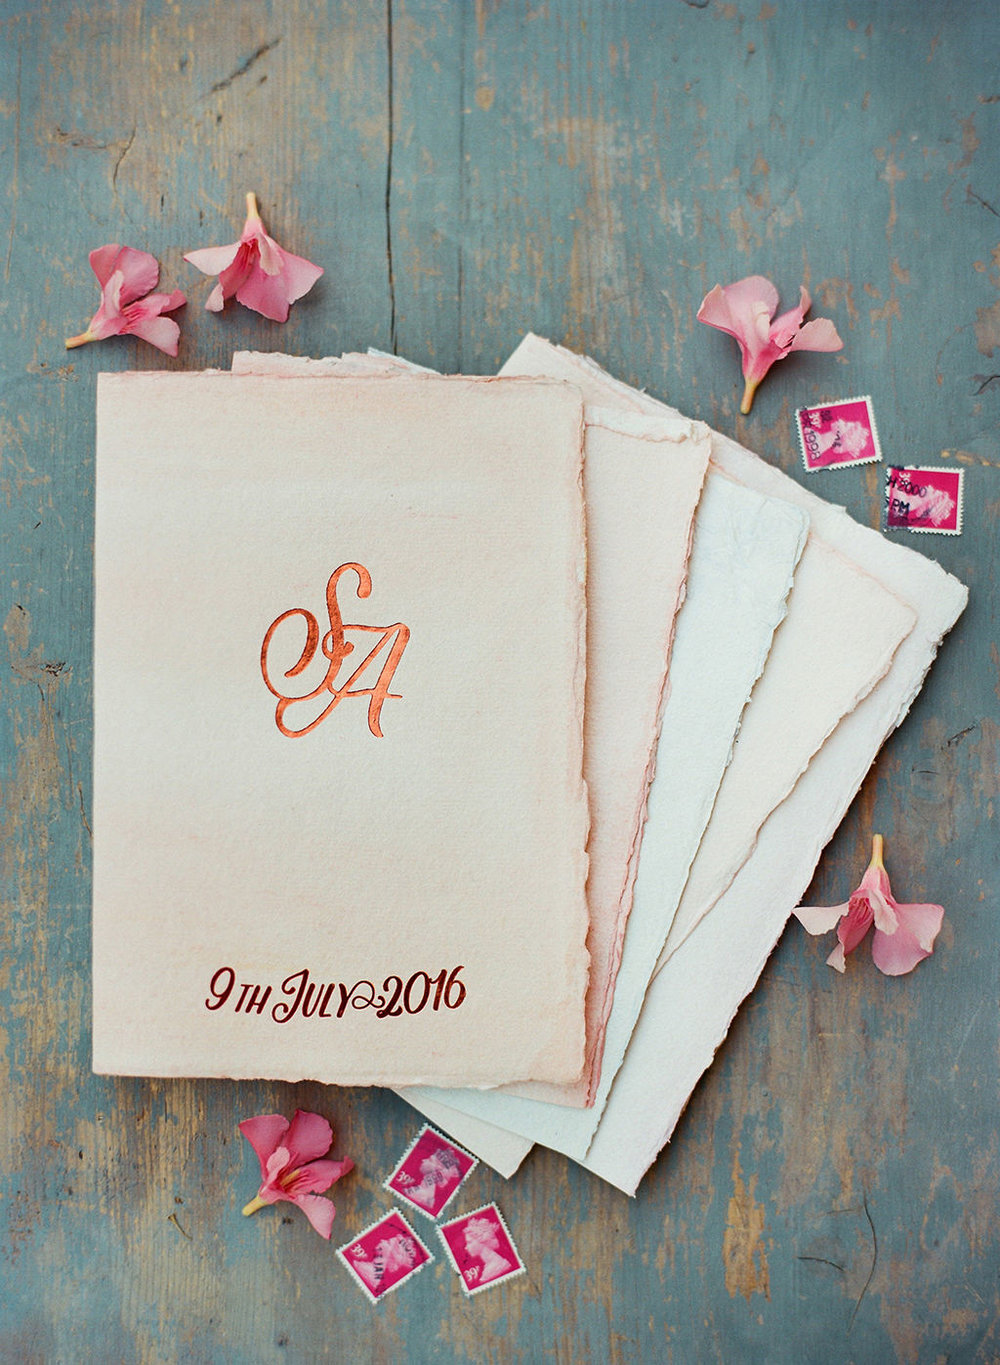 SadafMirzaei_WeddingStationery14.jpg